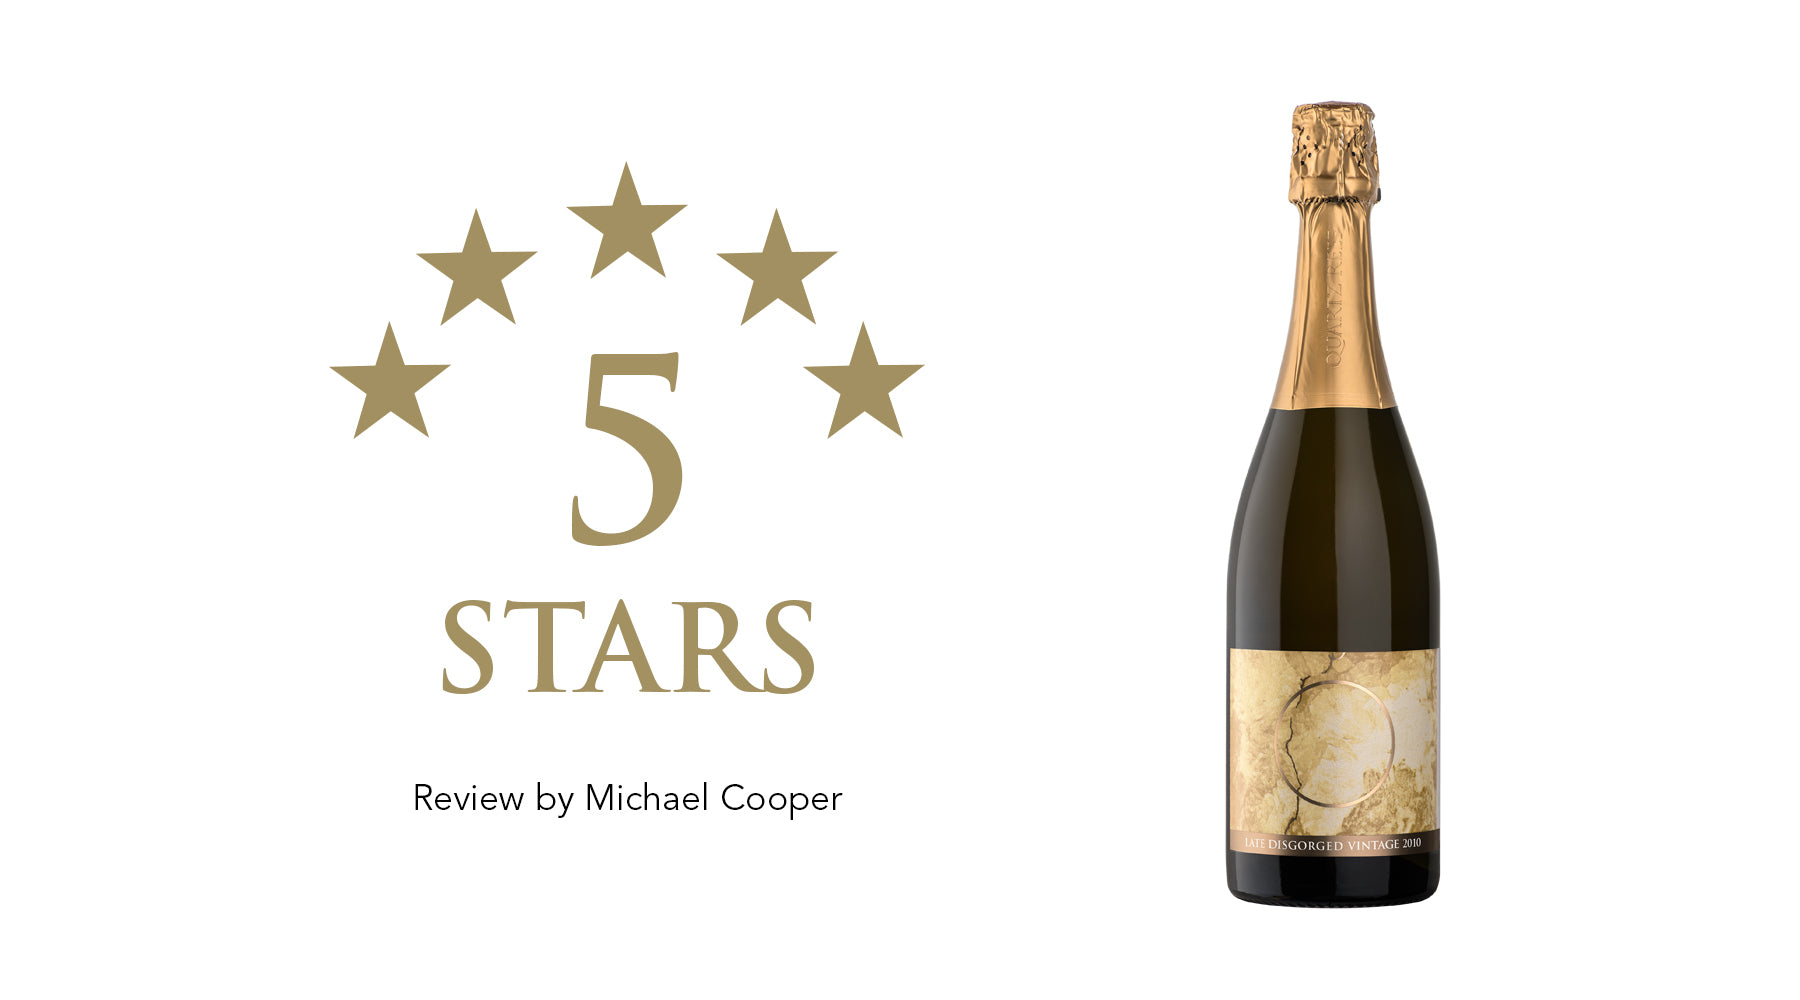 Late Disgorged Vintage 2010 - Awarded 5 Stars